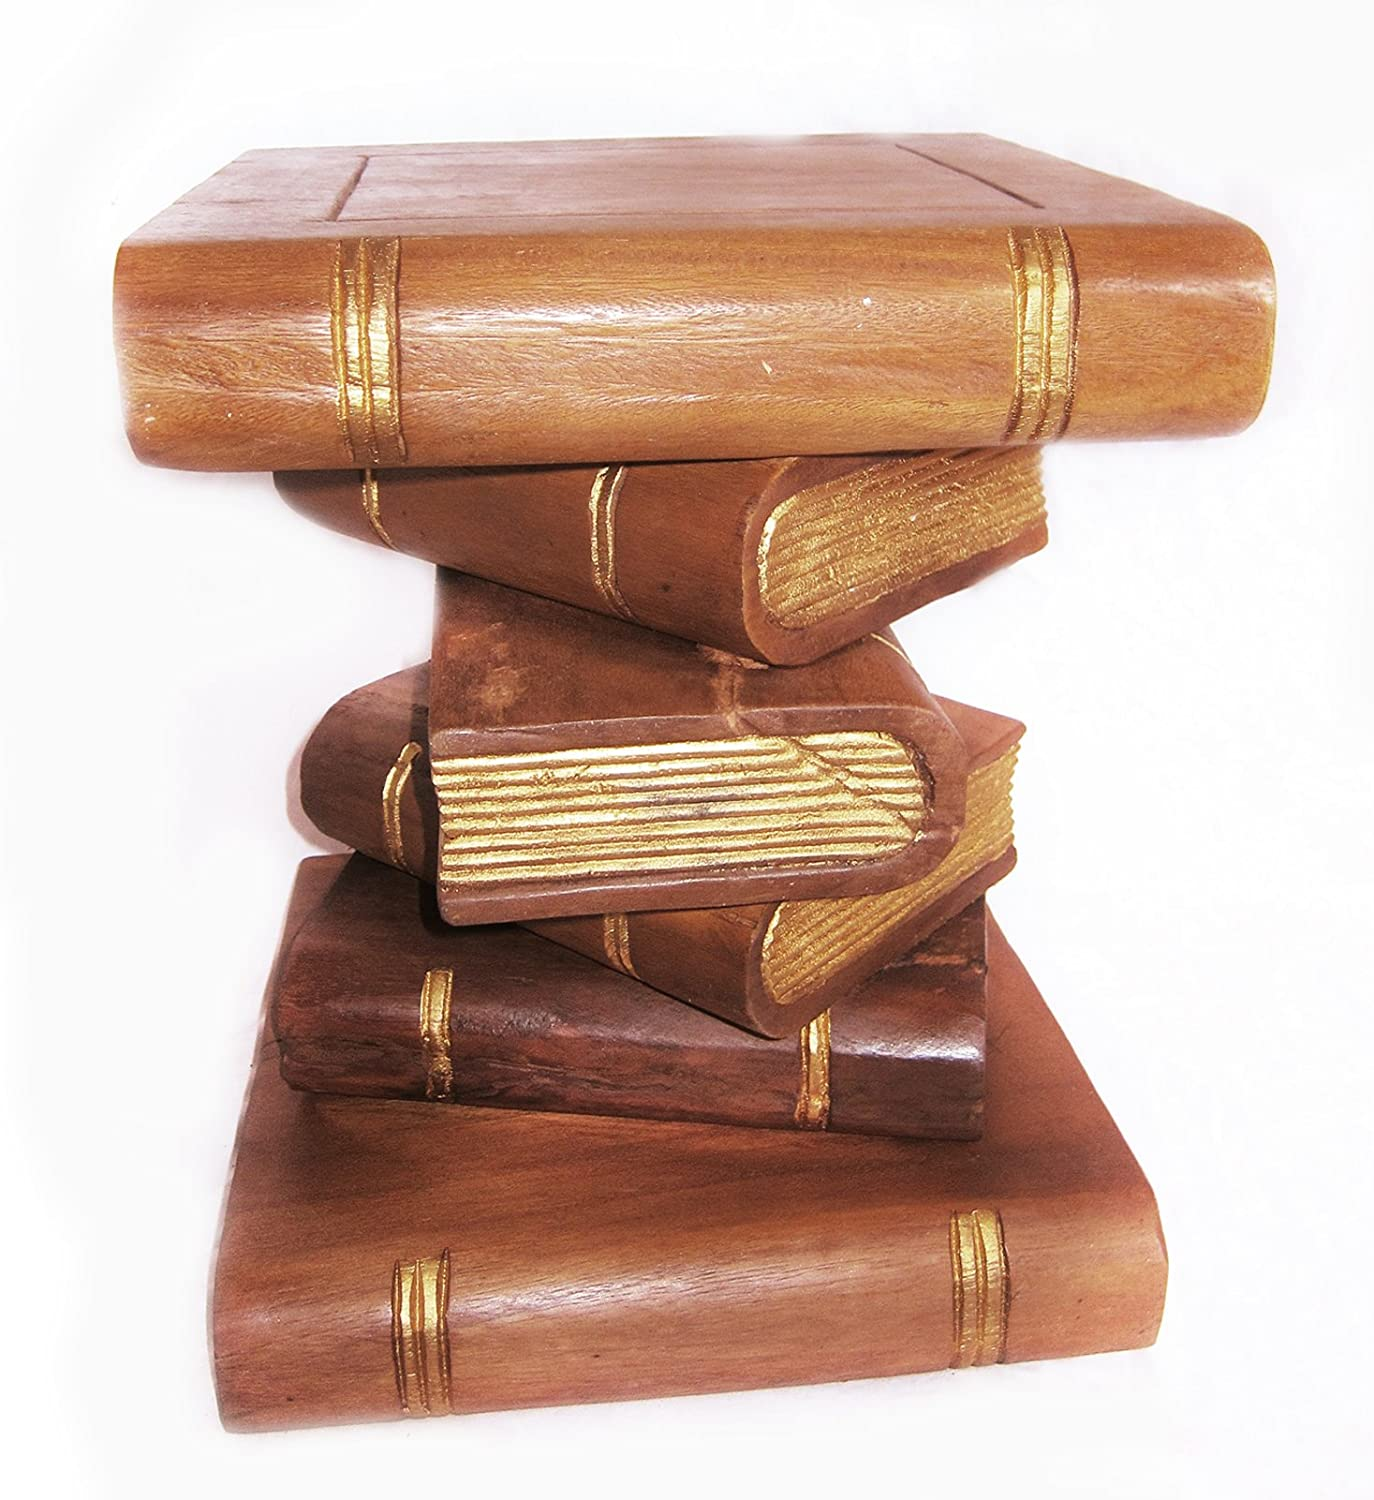 Stacked Books Ornamental table Amazon Kitchen & Home